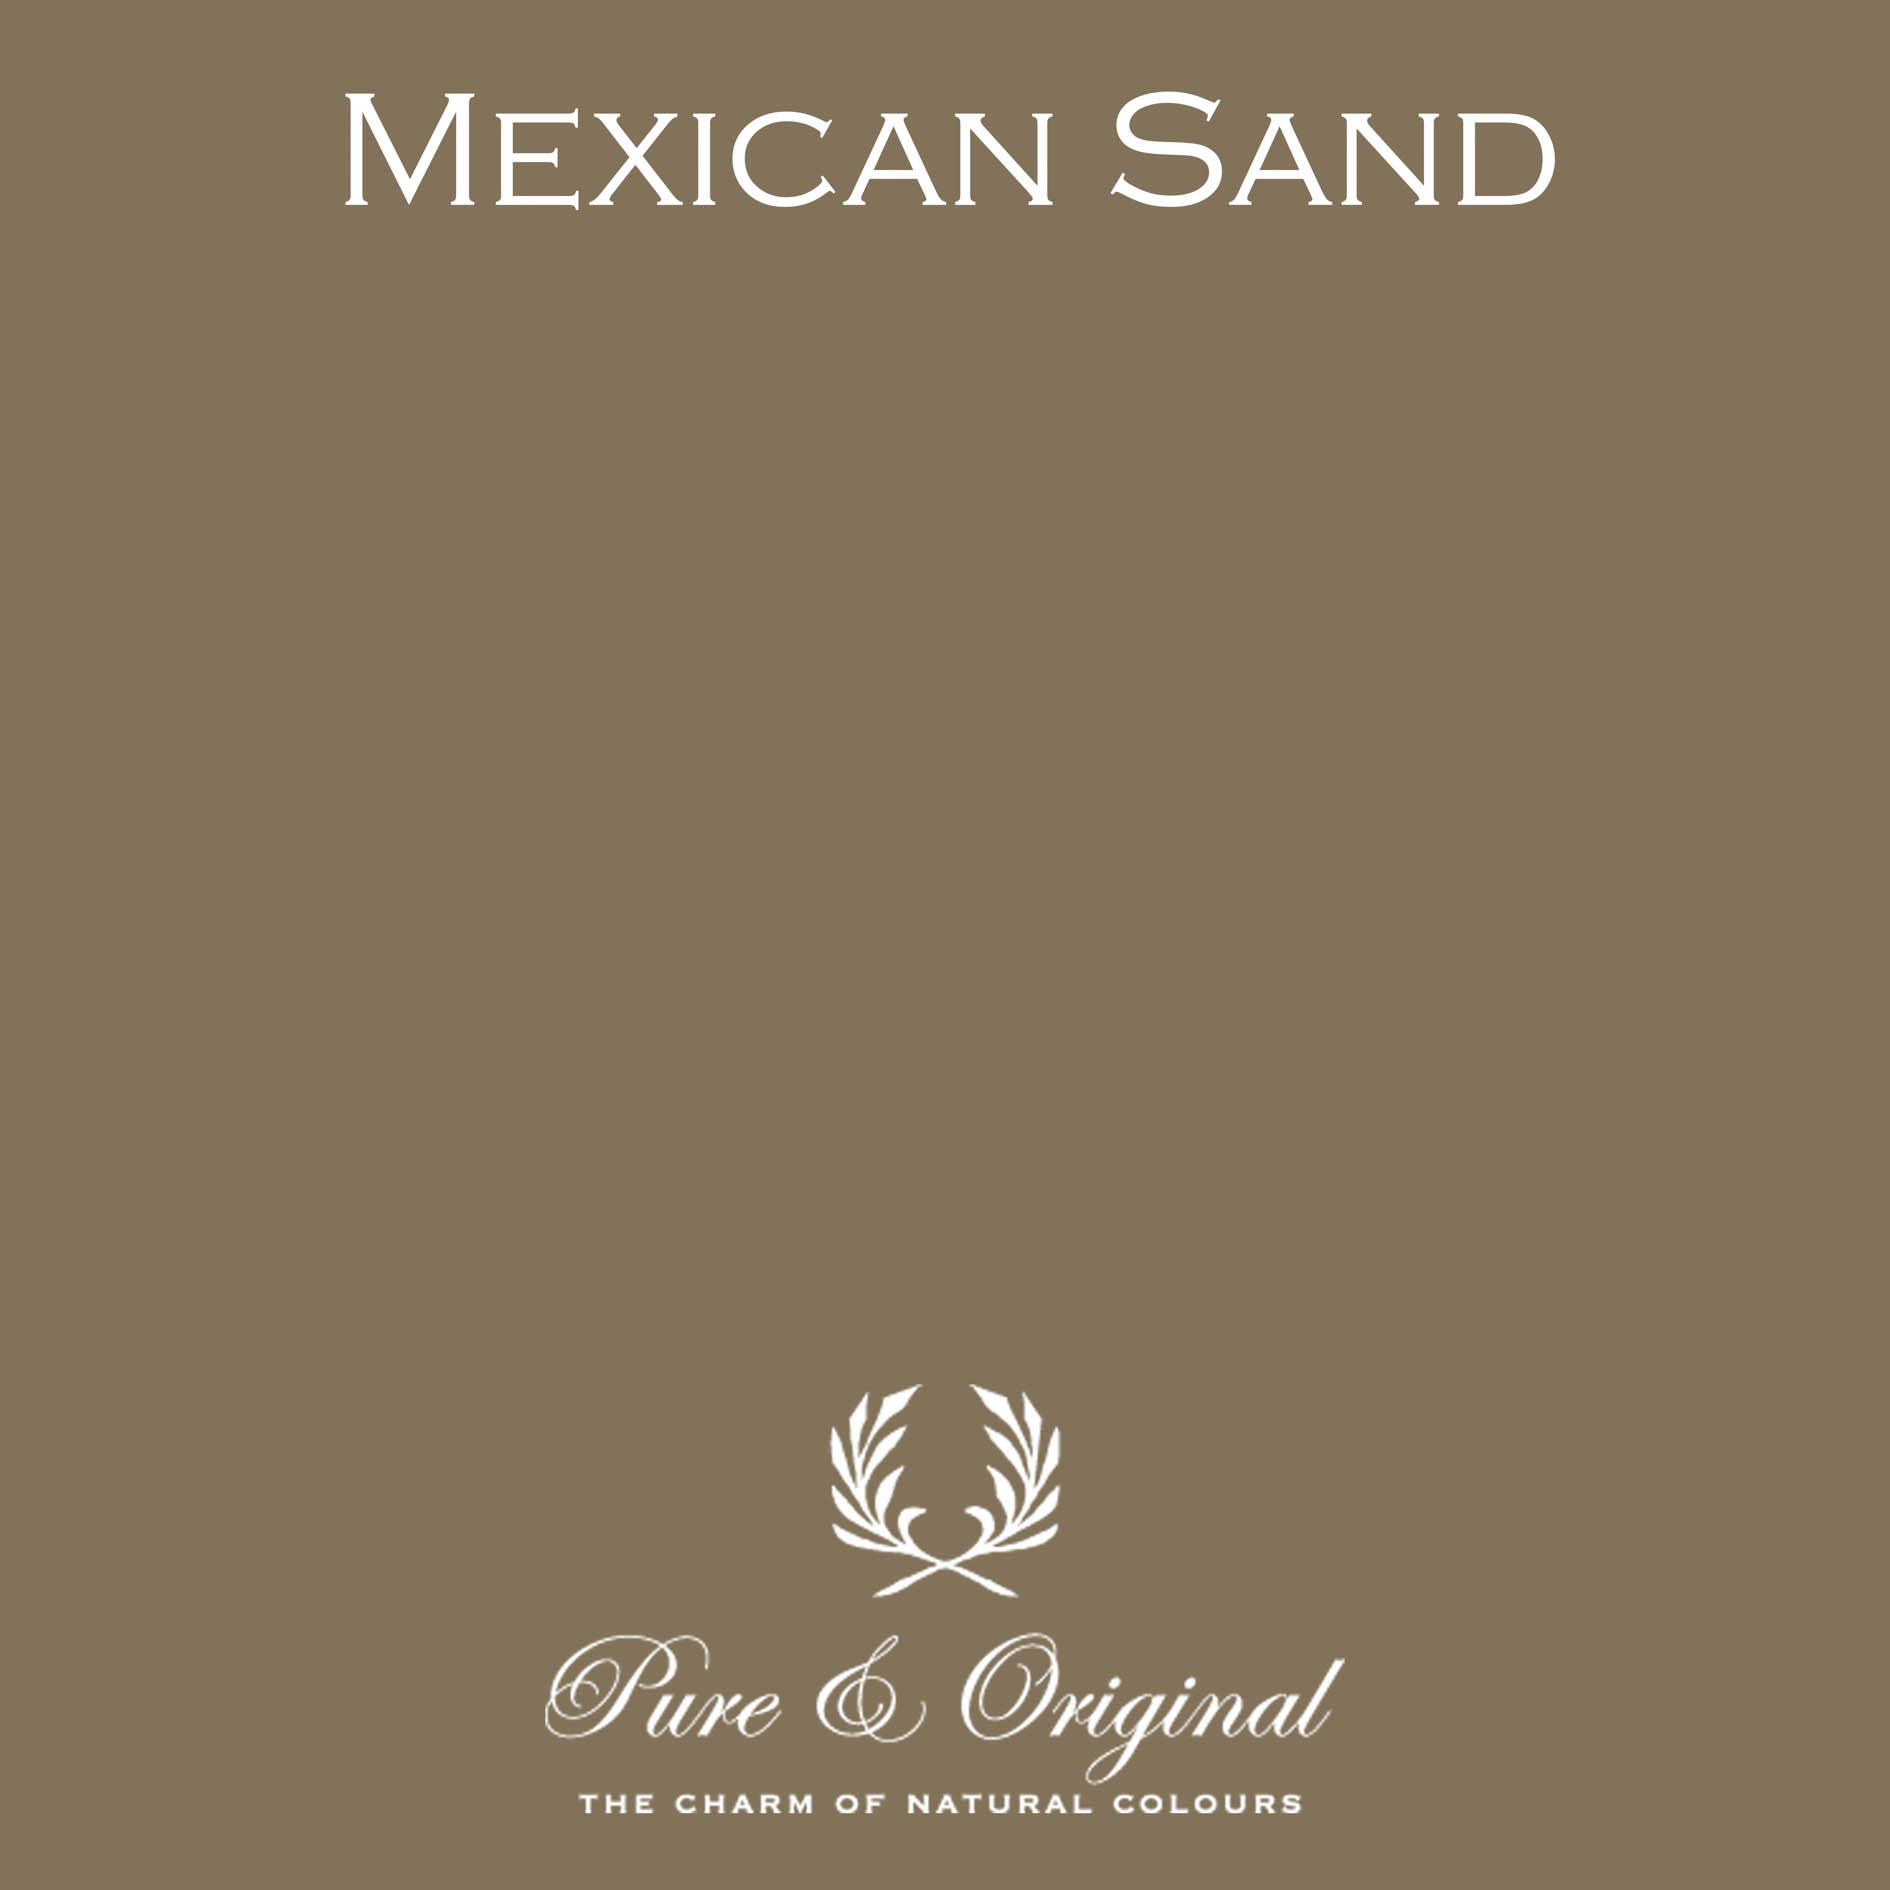 Pure & Original Mexican Sand